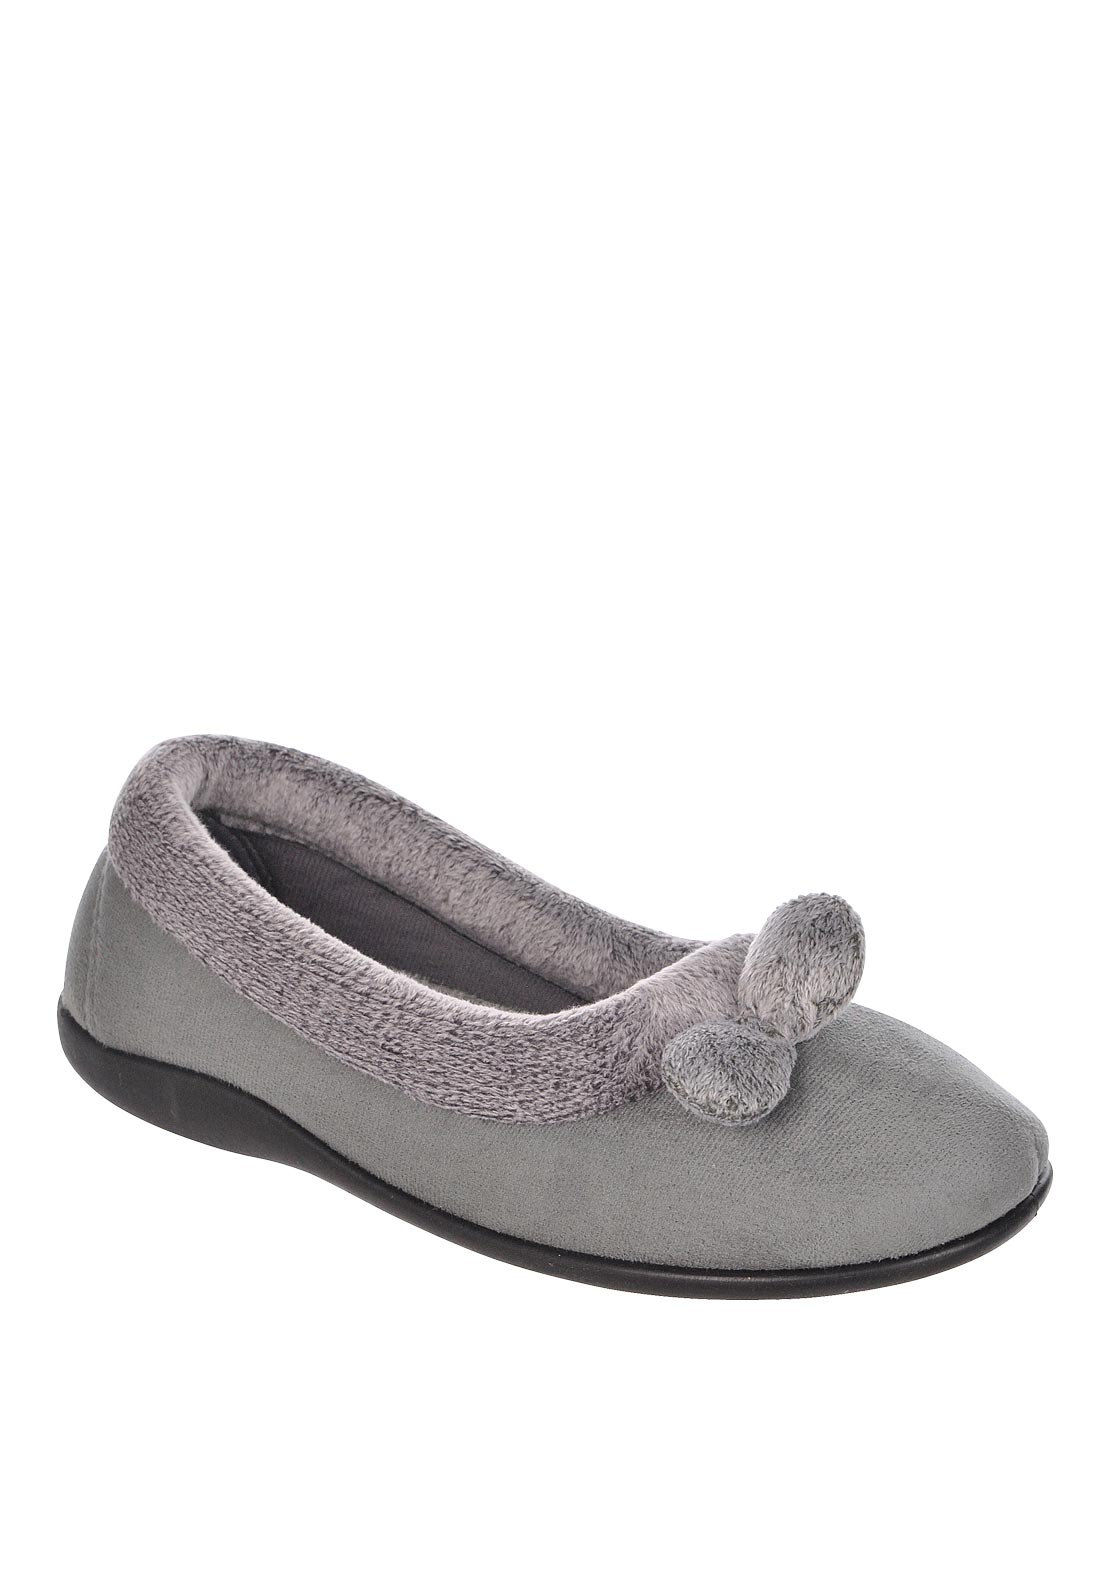 Lotus Womens Harriets Pom Pom Detail Slippers, Grey